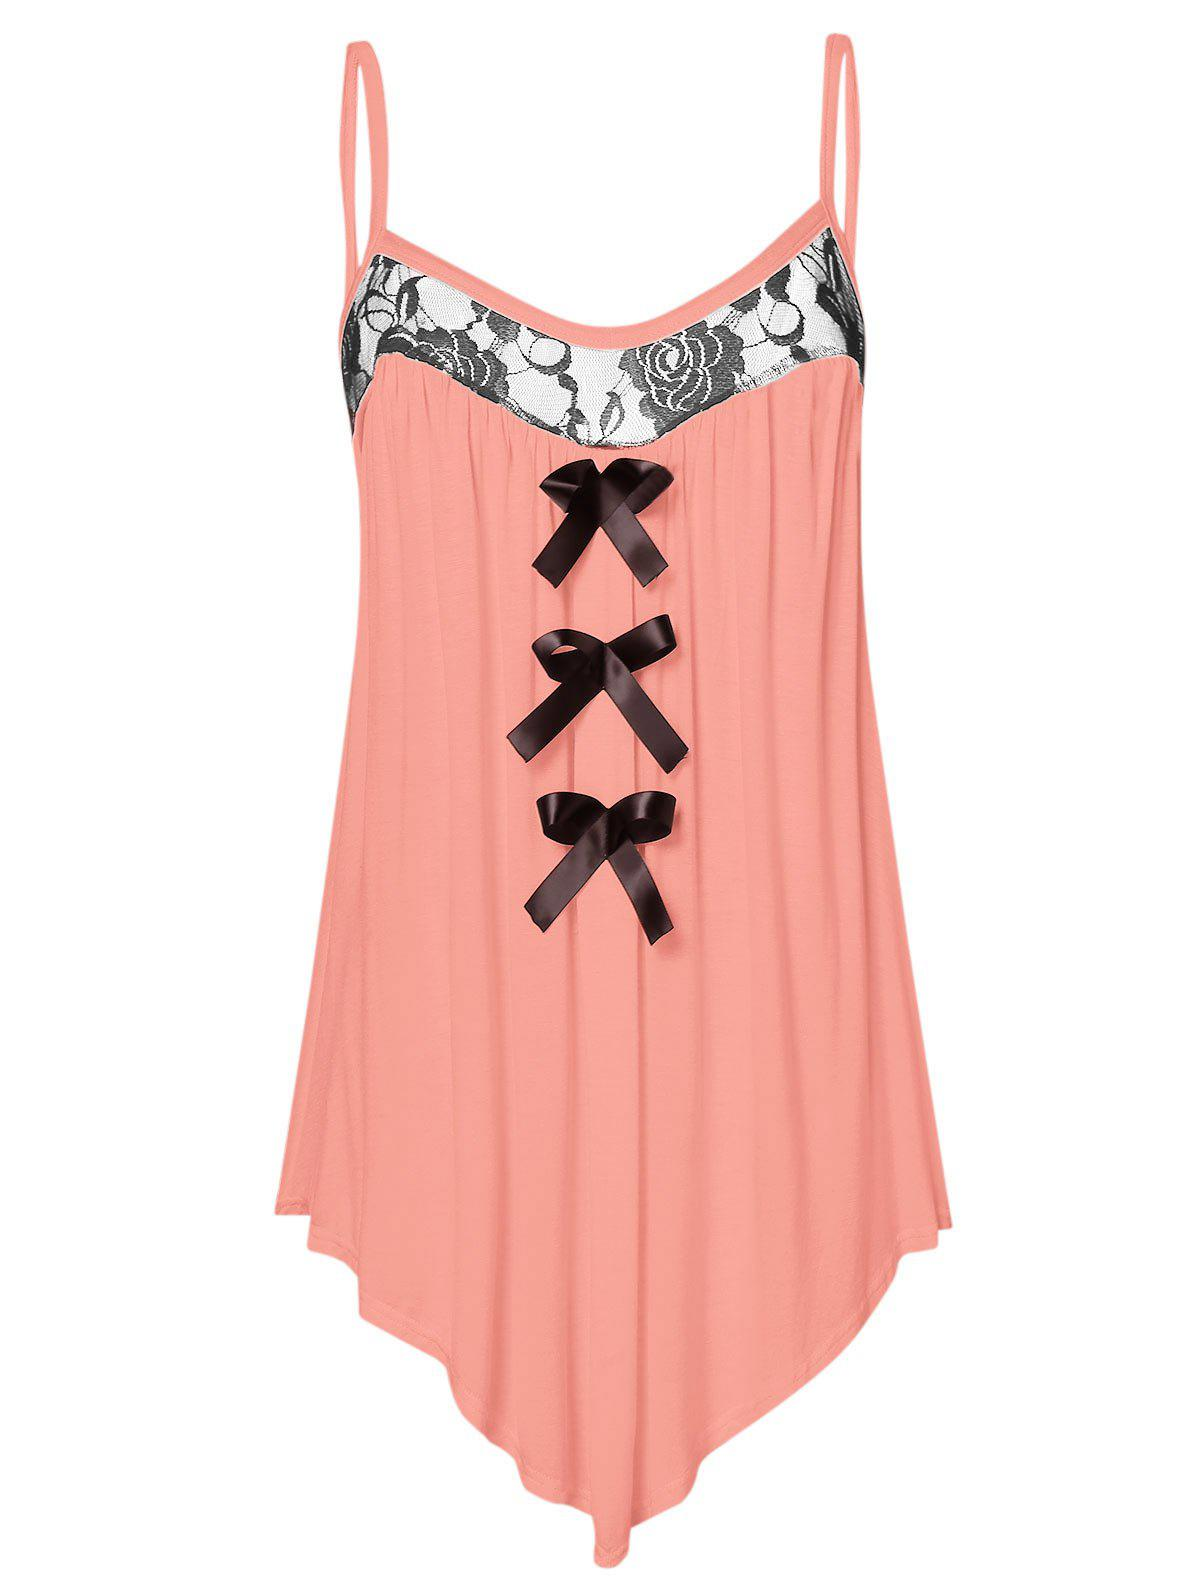 Fancy Lace Panel Plus Size Bowknot Embellished Cami Top